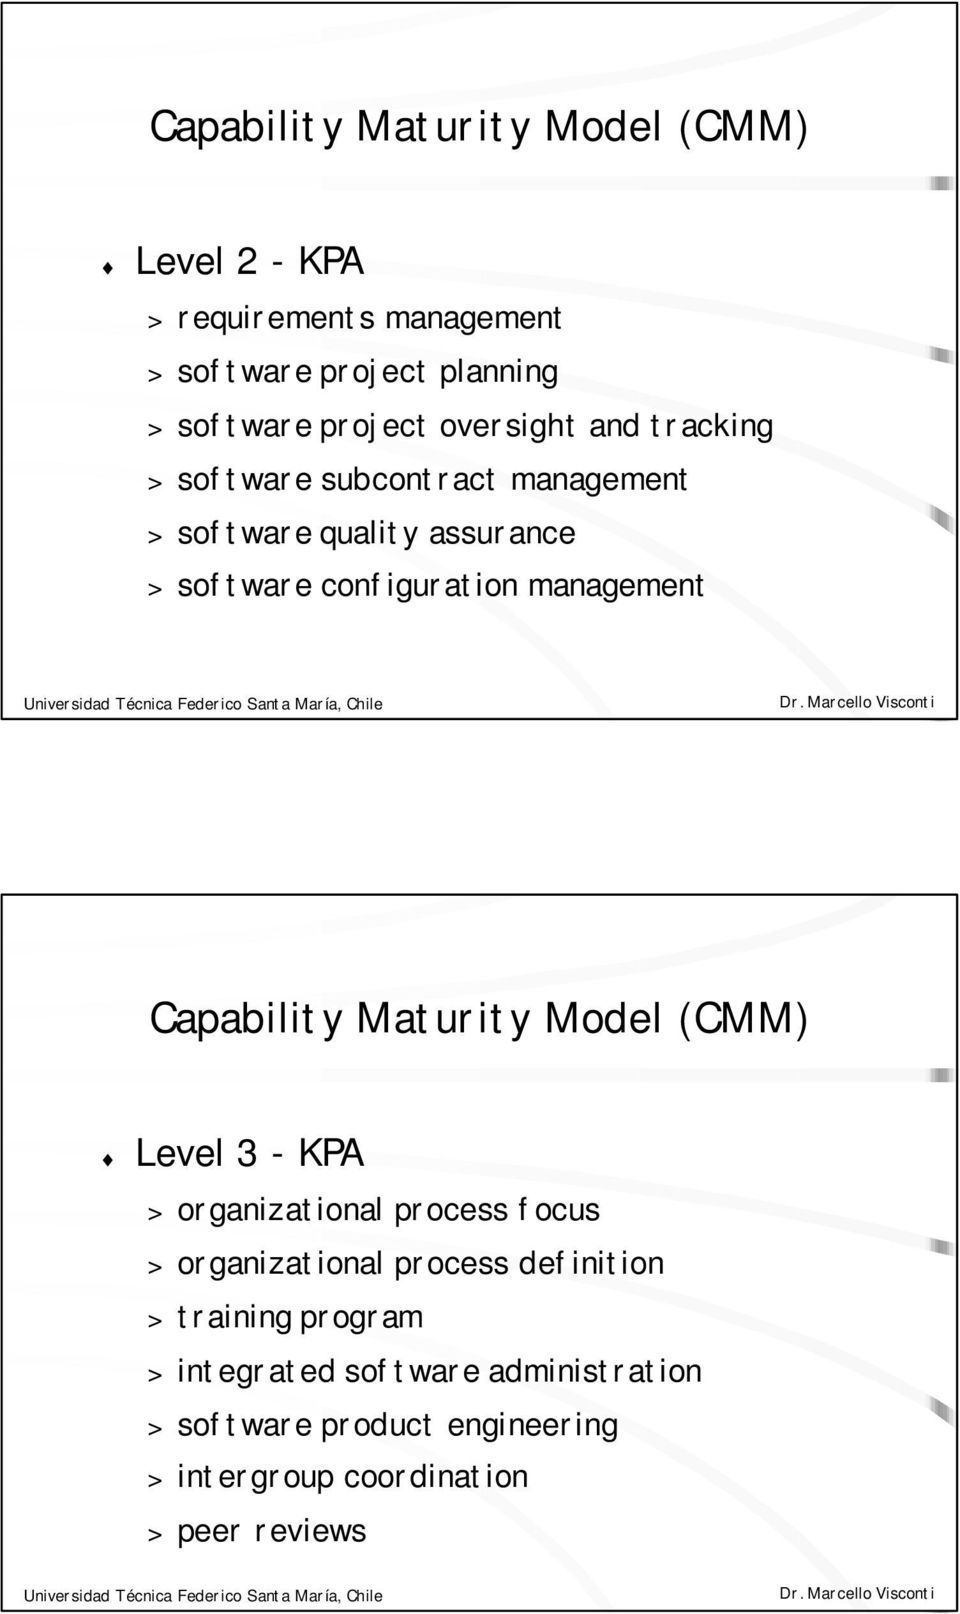 management Capability Maturity Model (CMM) Level 3 - KPA > organizational process focus > organizational process